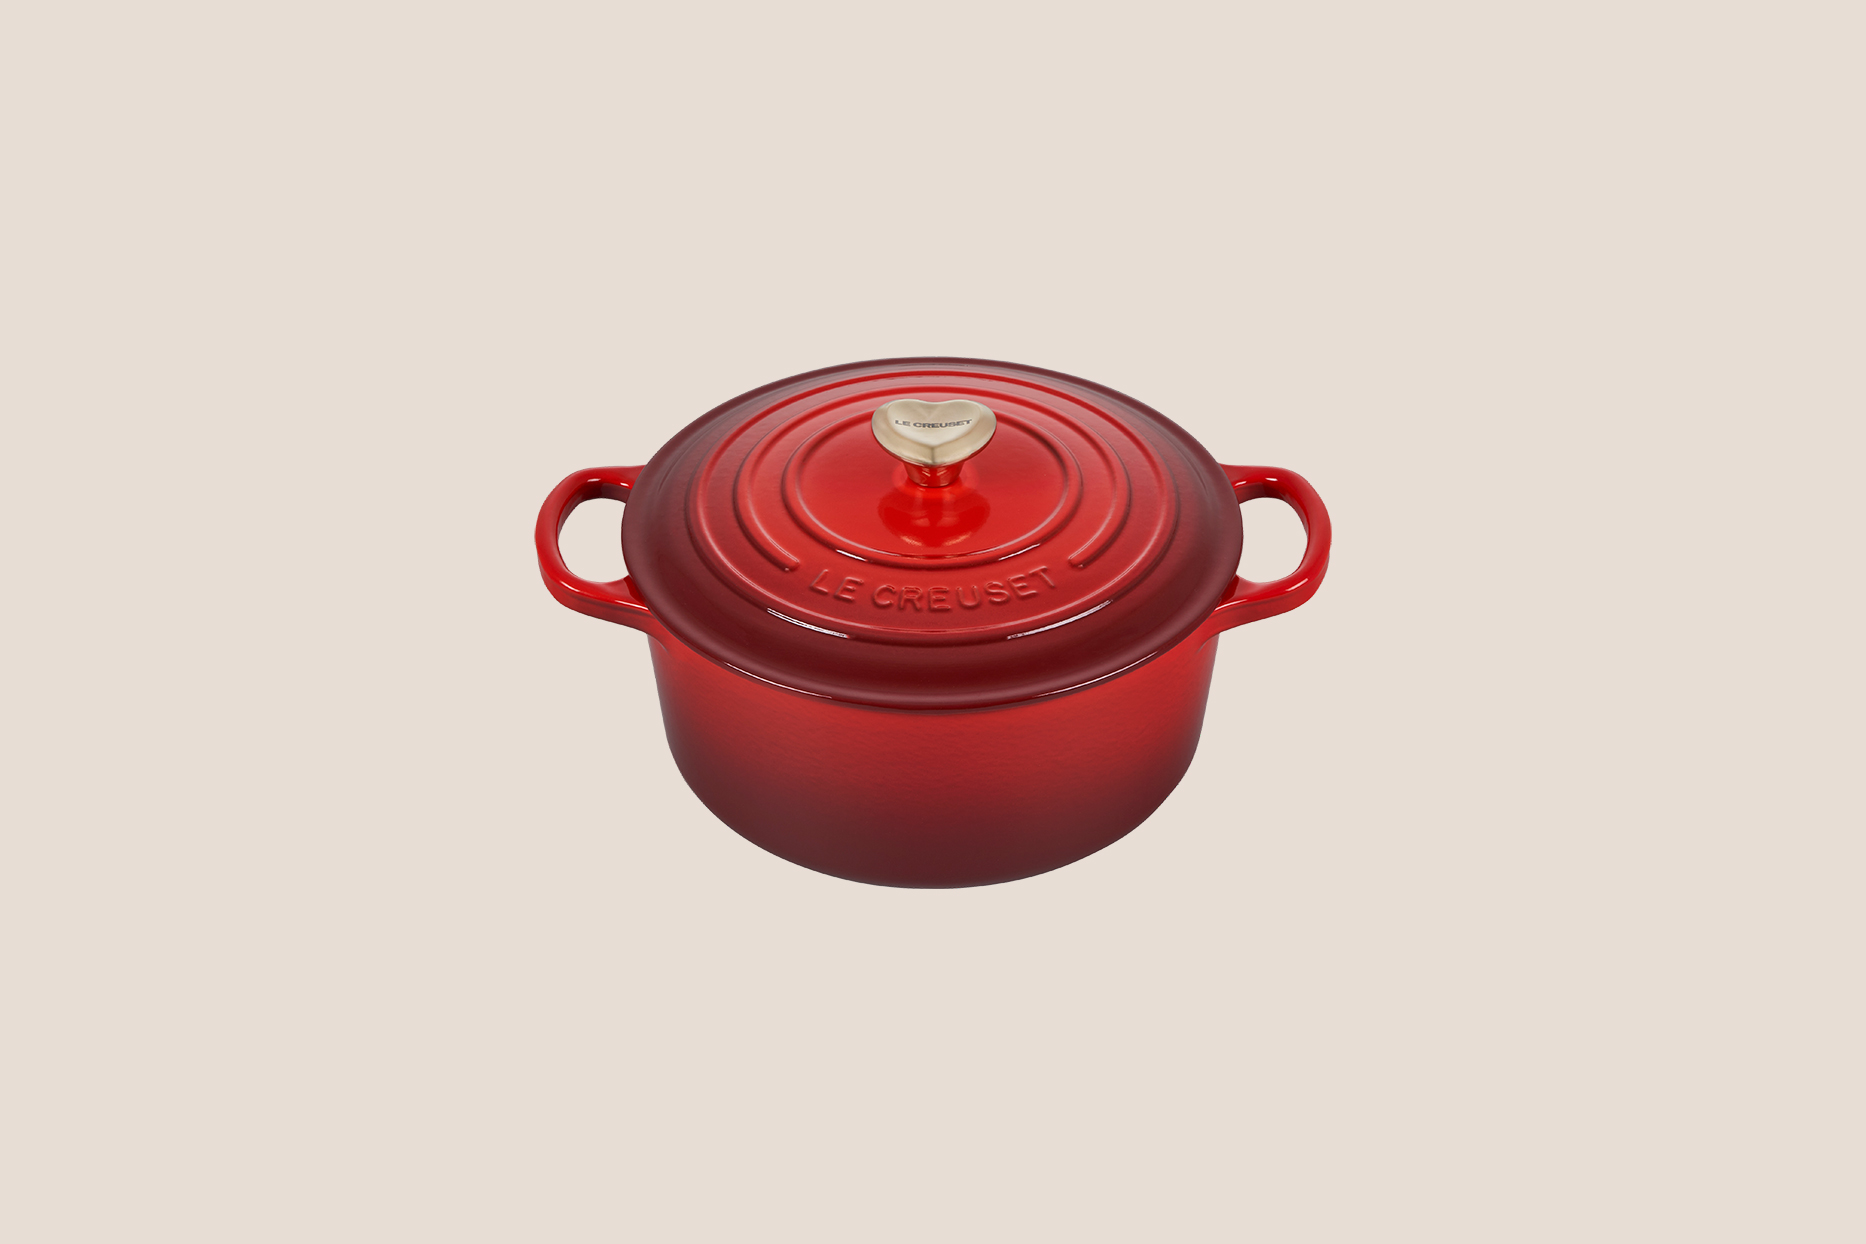 Le Creuset red pot with heart knob